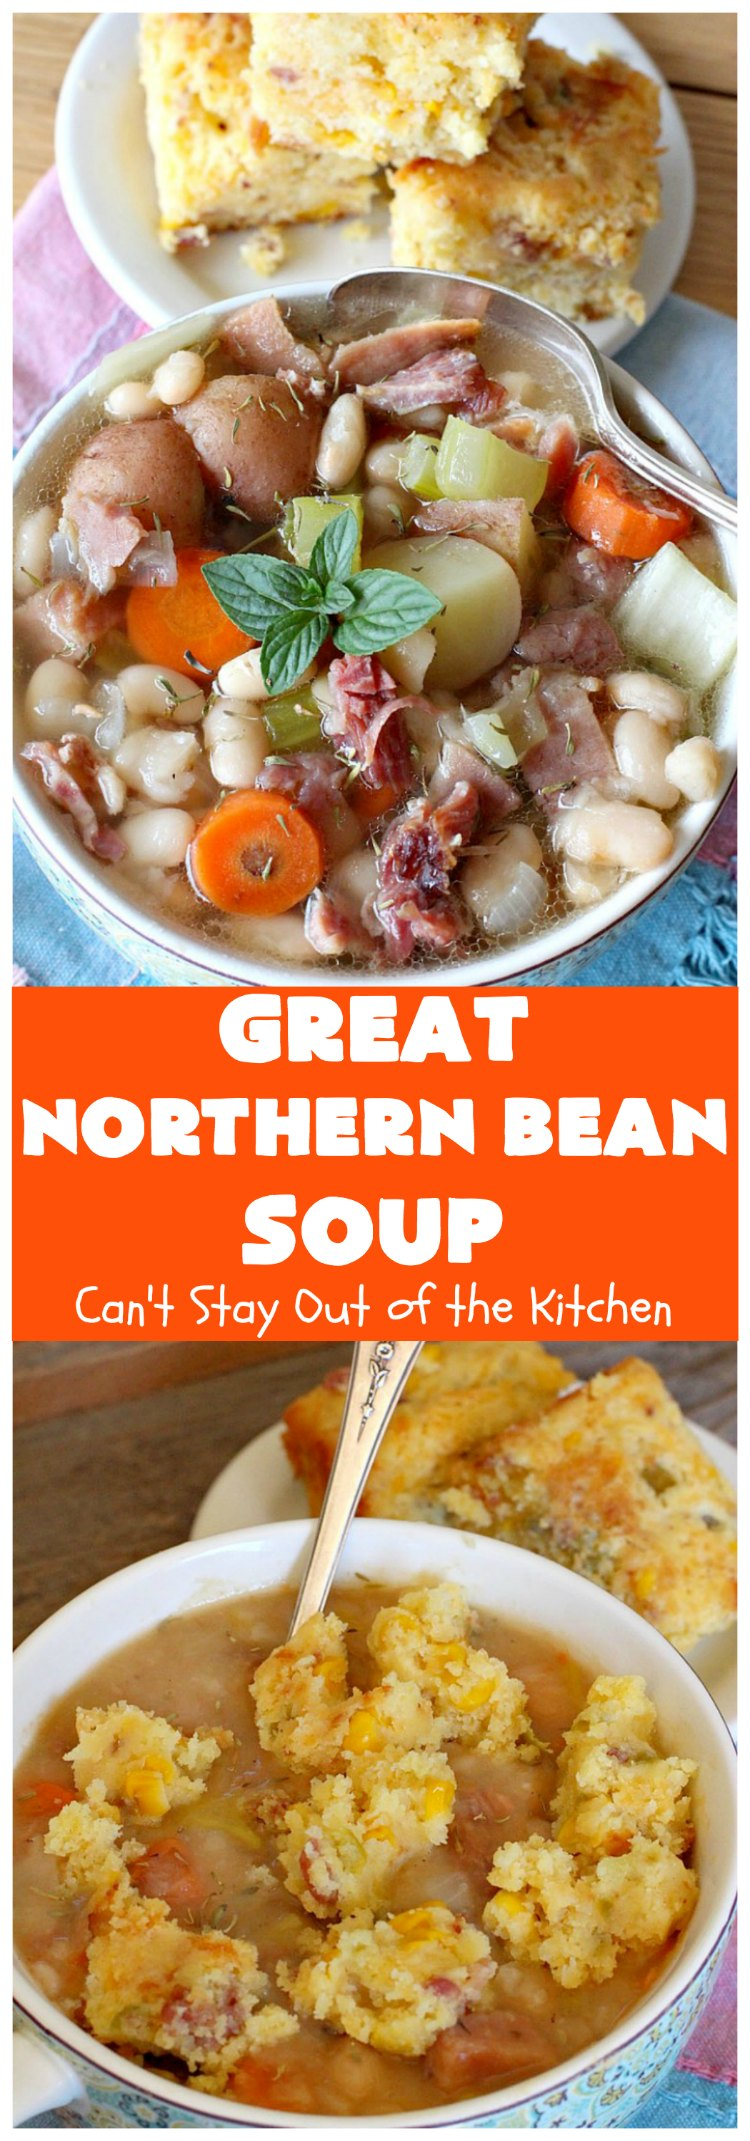 Great Northern Bean Soup | Can't Stay Out of the Kitchen